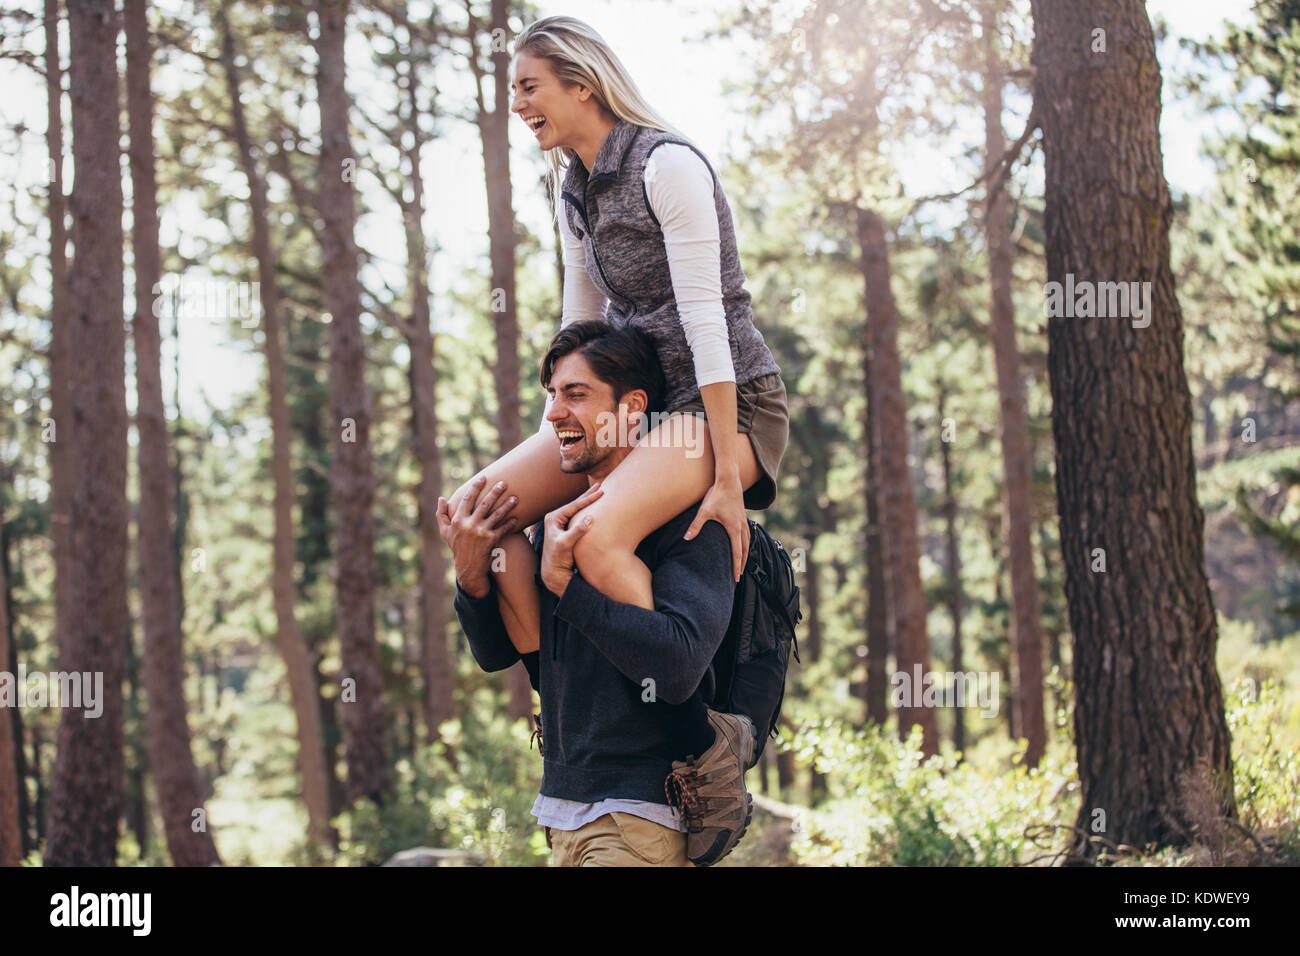 Hiking couple having fun while trekking in forest. Woman riding piggyback on man during hiking in forest. - Stock Image